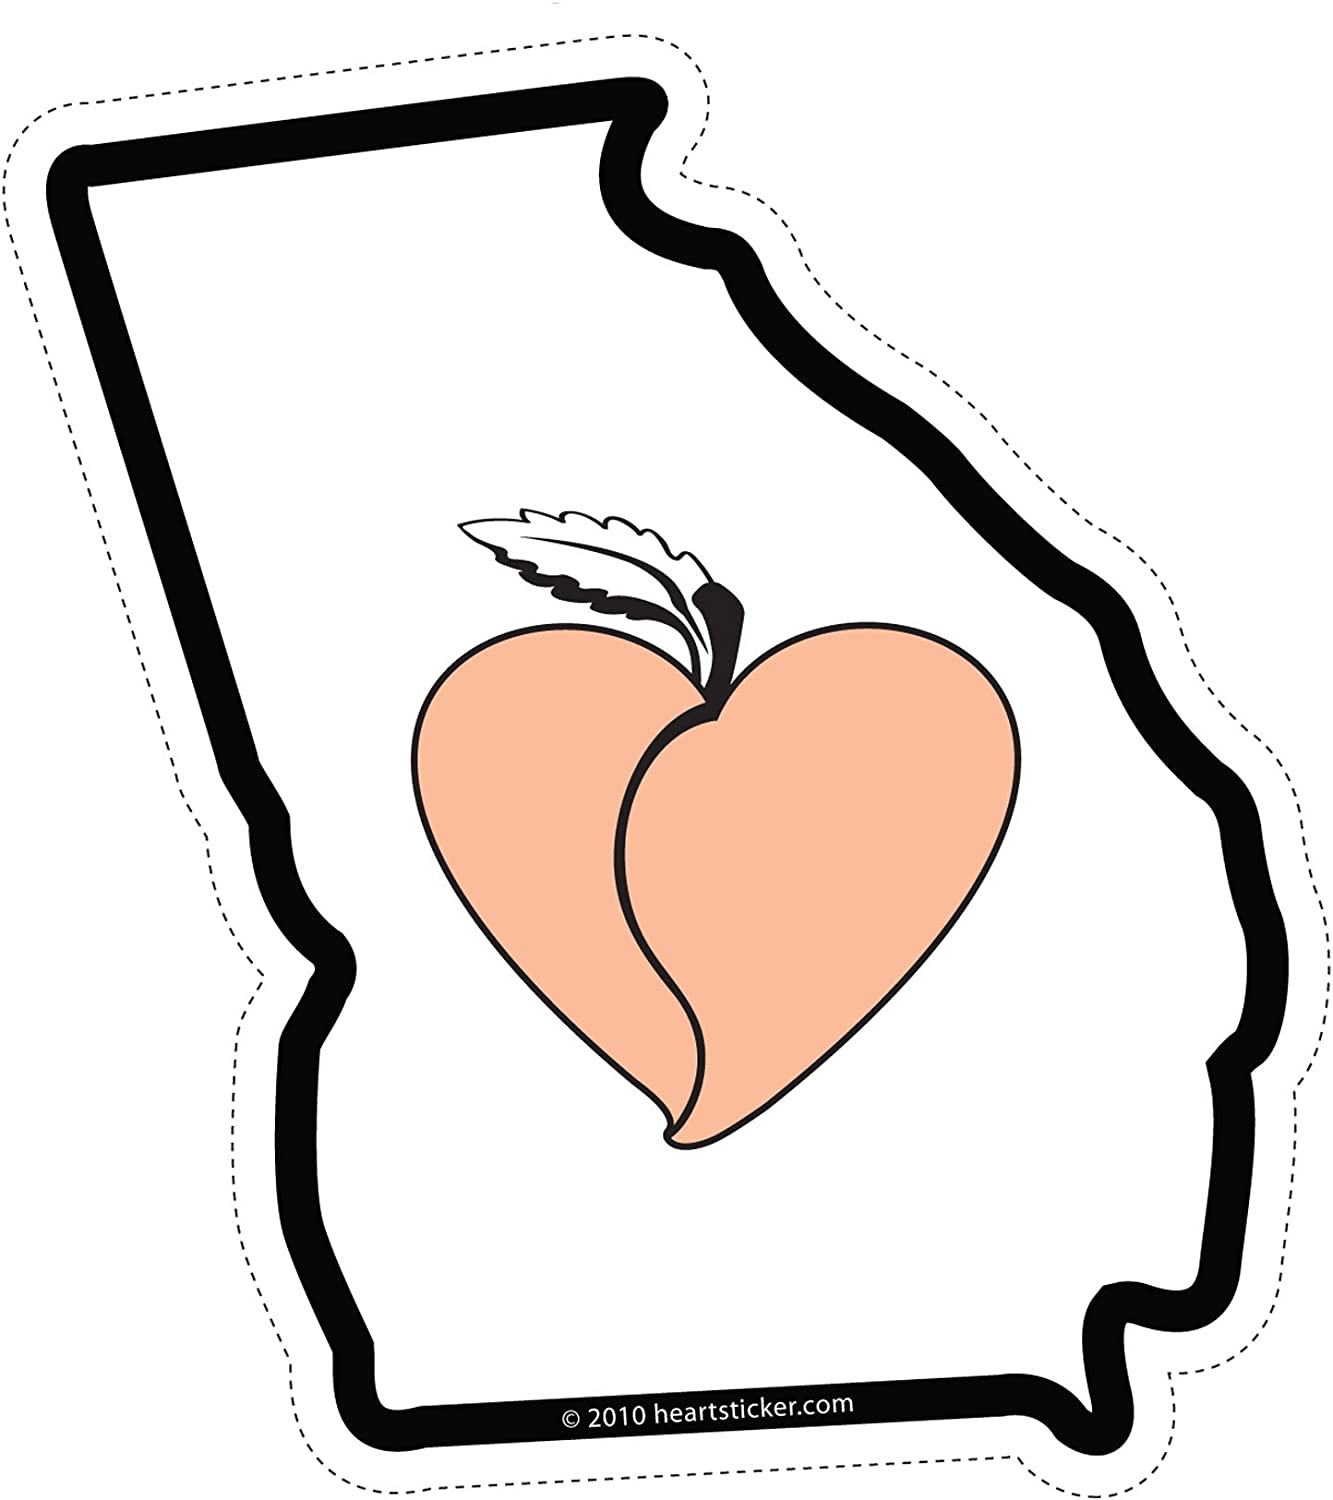 Georgia Sticker Peach State Shaped Decal Apply To Water Bottle Laptop Cooler Car Truck Bumper Tumbler 404 Roots Atlanta Sticker Peachtree Decal